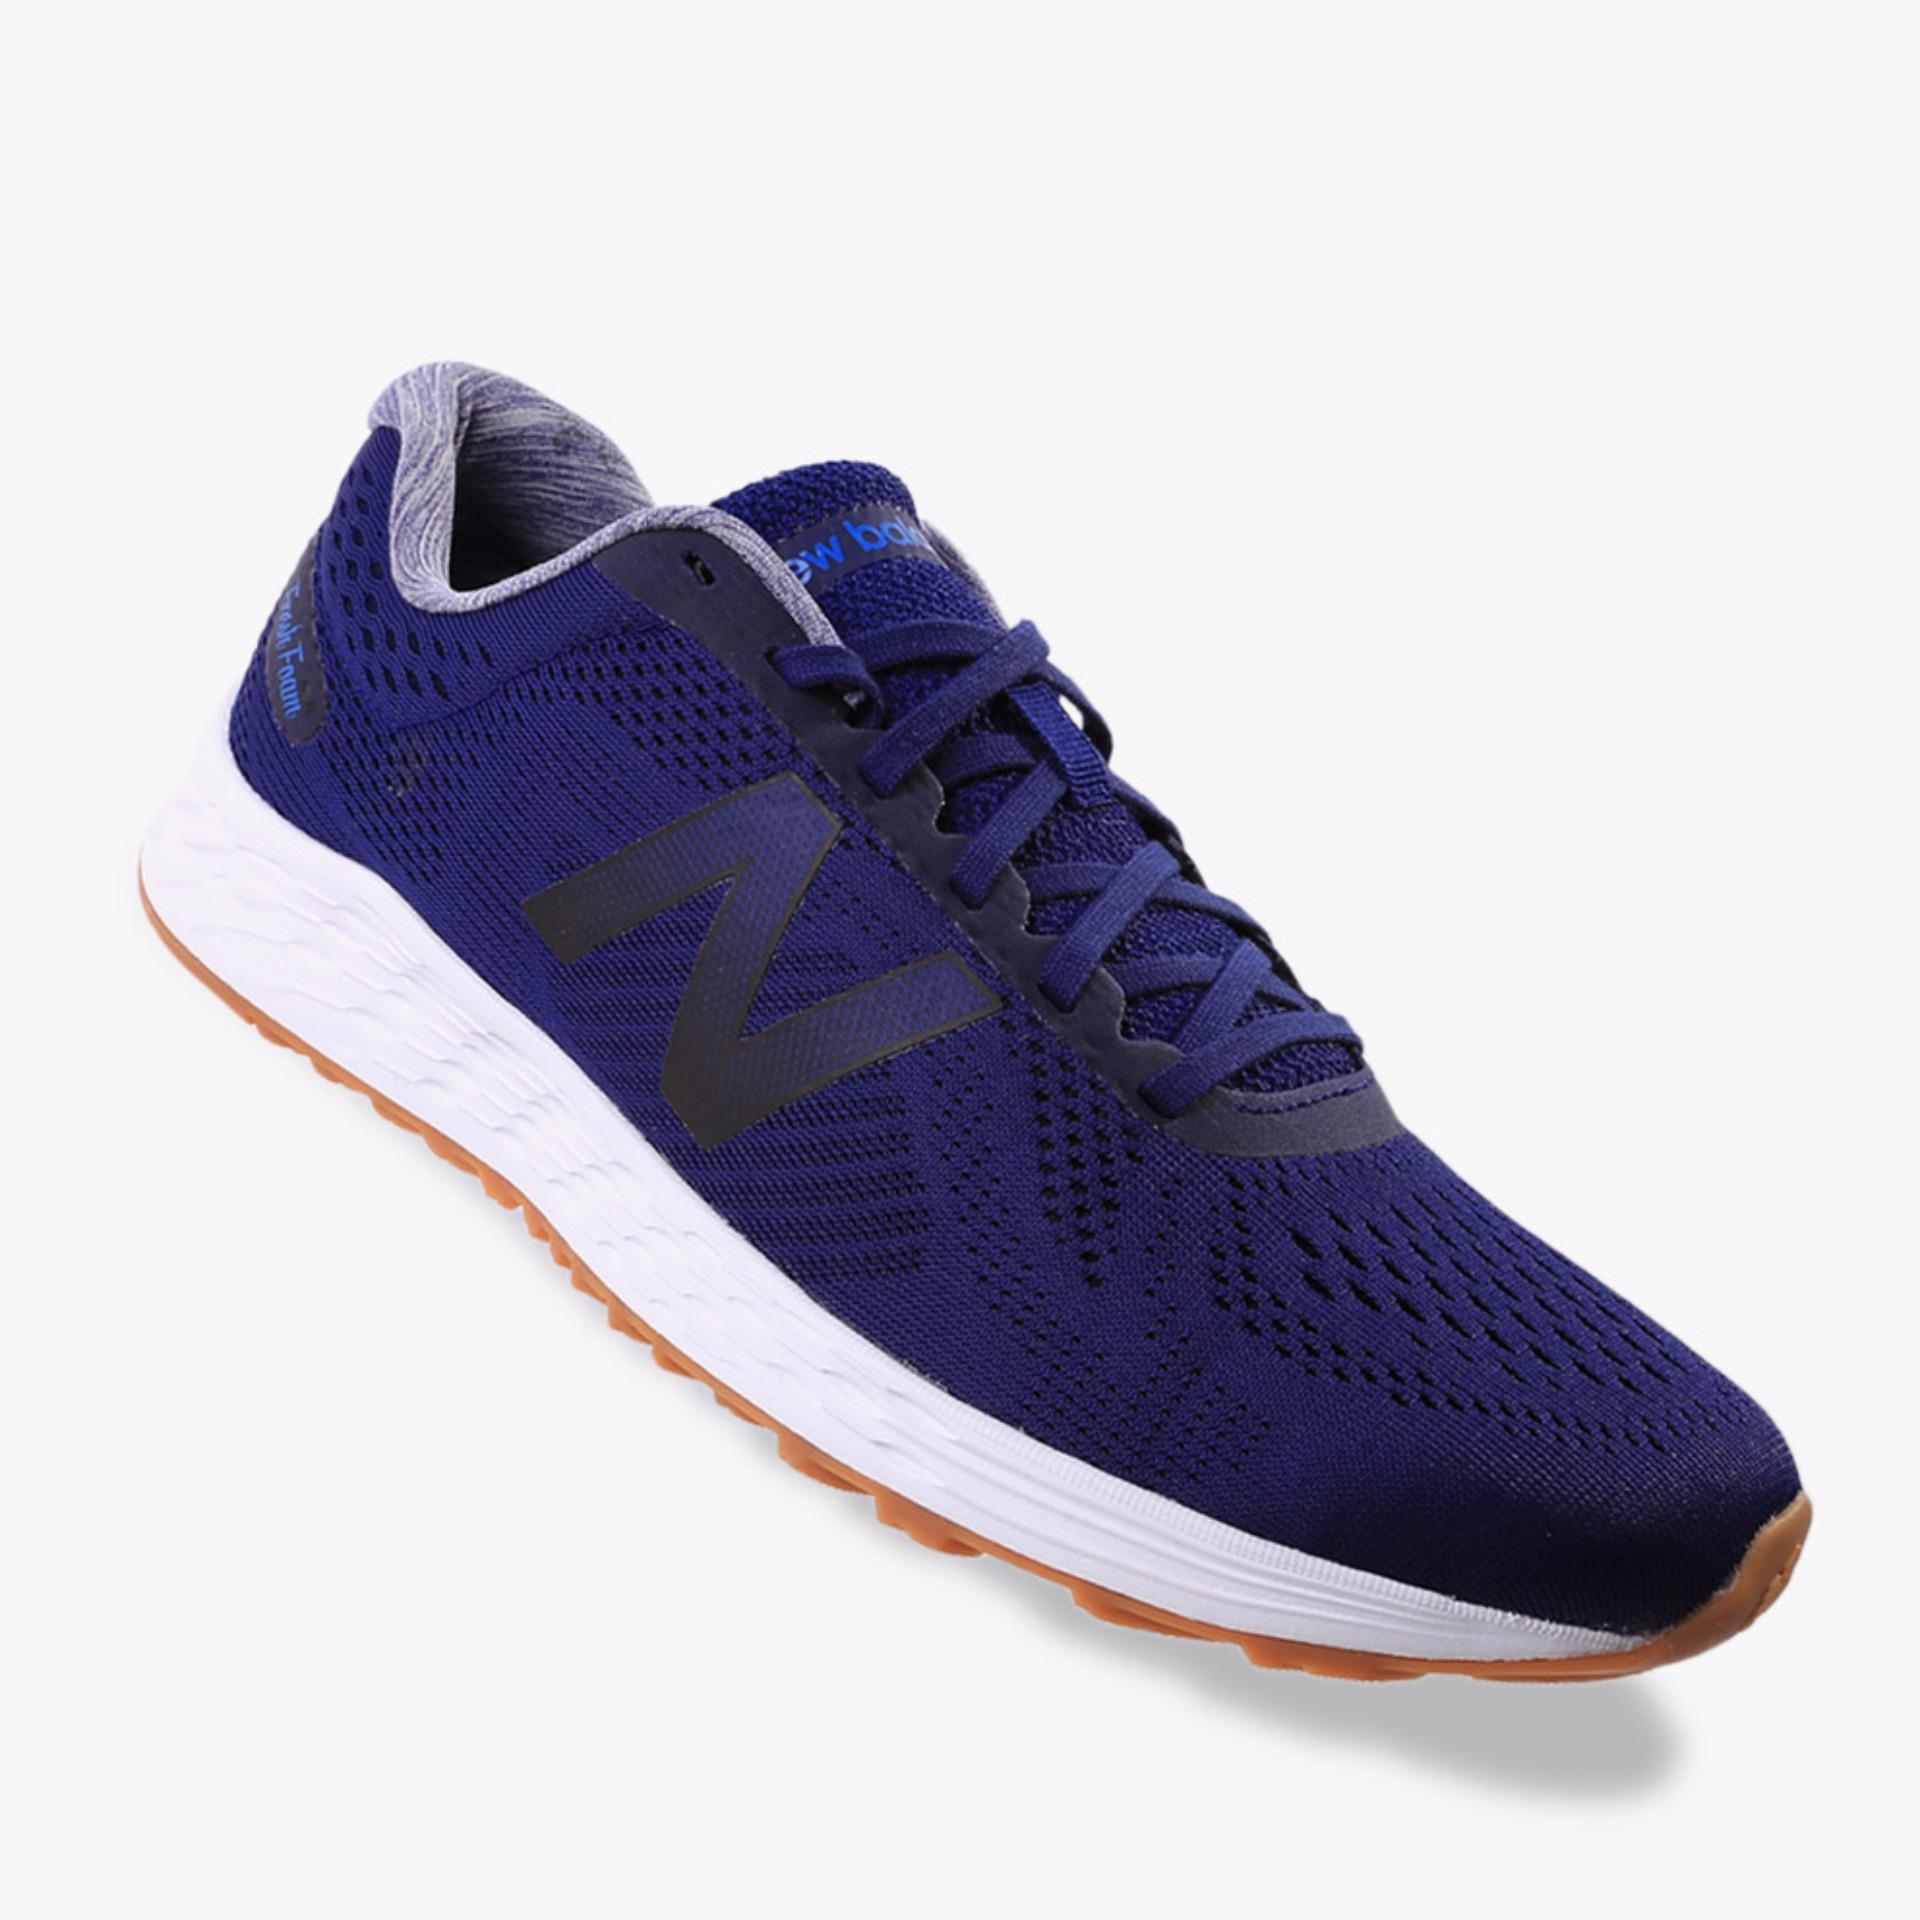 Jual New Balance Fresh Foam Arishi Men S Running Shoes Navy Di Indonesia